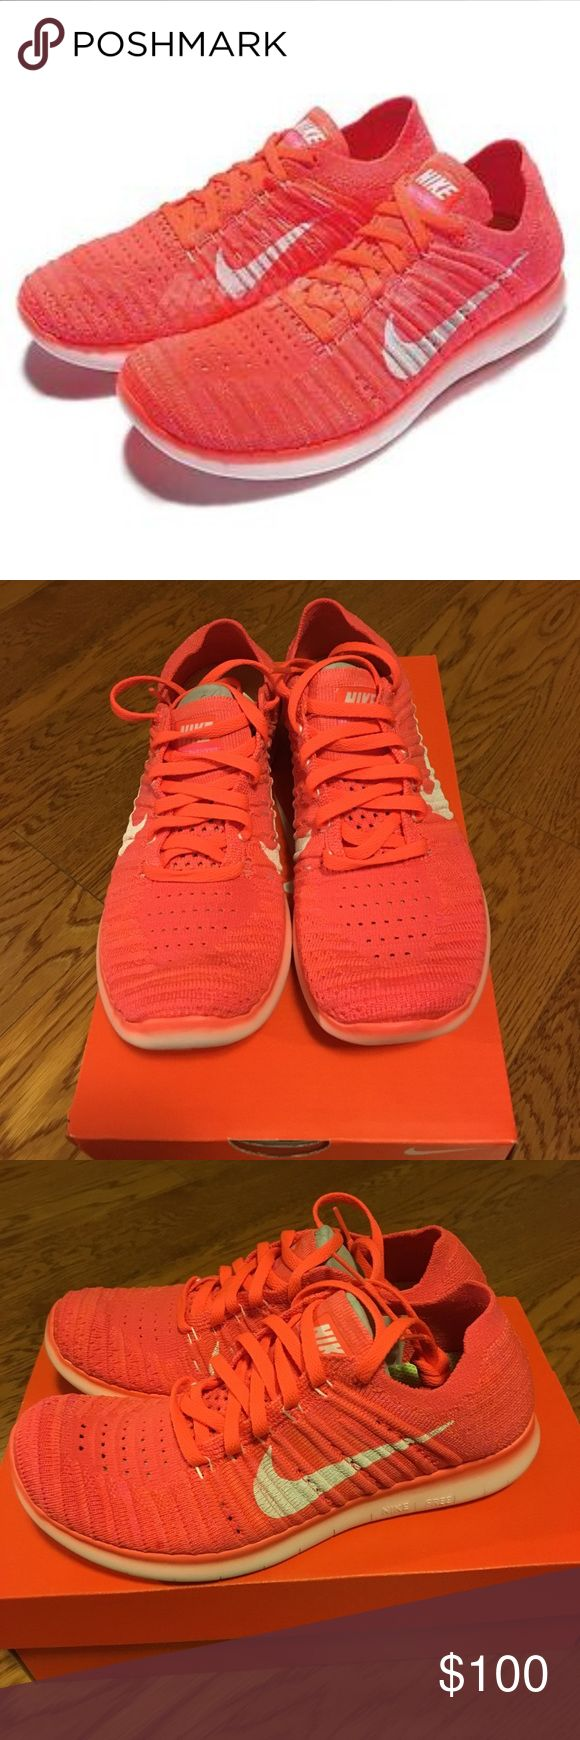 WMNS NIKE FREE RN FLYKNIT Brand new with original box. Women Nike free RN FLYKNIT. HYPR ORNG / WHT-TTL CRMSN-PNK BL HYPER ORANGE / CRAMOISI TOTAL / RO. Size: 6 Nike Shoes Athletic Shoes